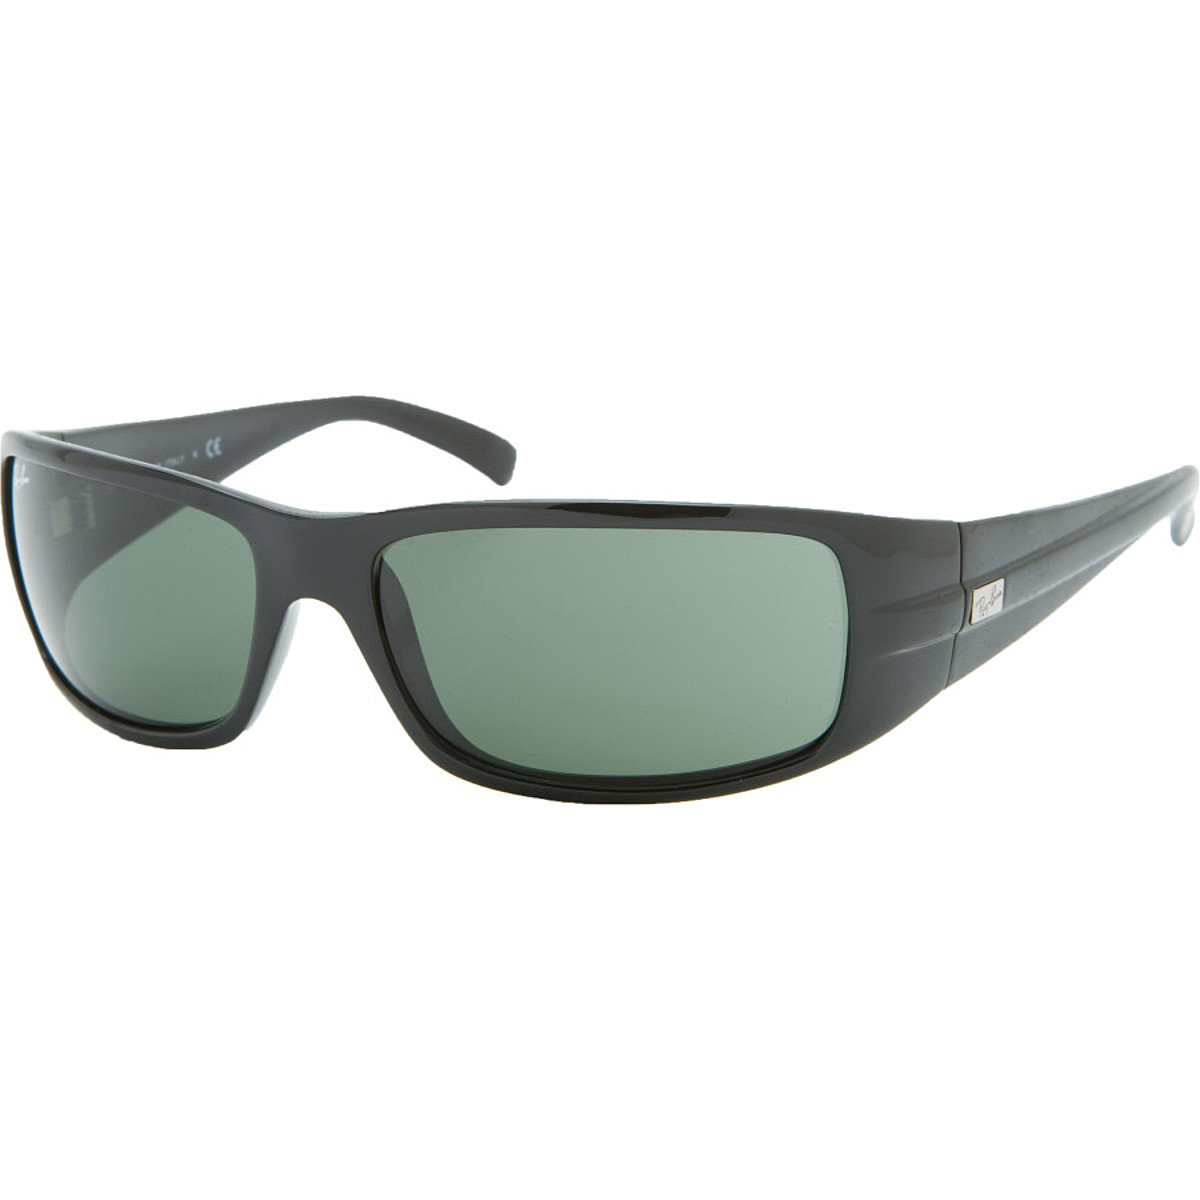 photo: Ray-Ban RB4057 sport sunglass